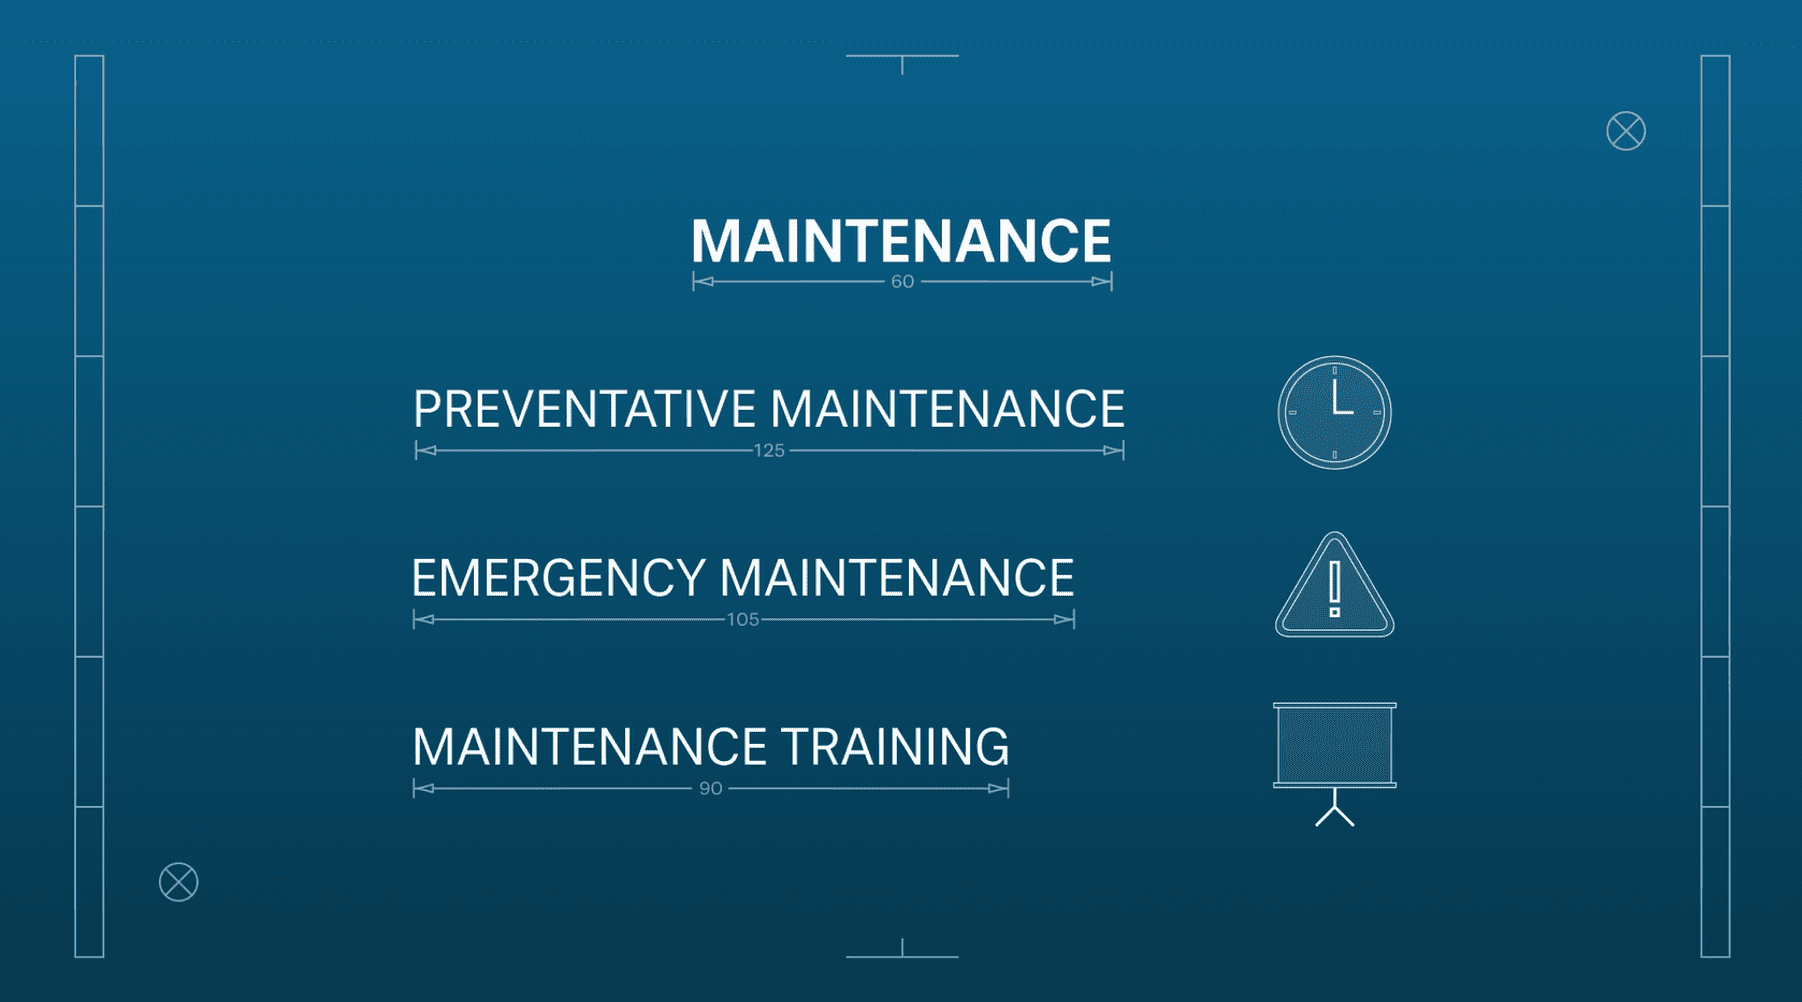 maintenance 3 bullets